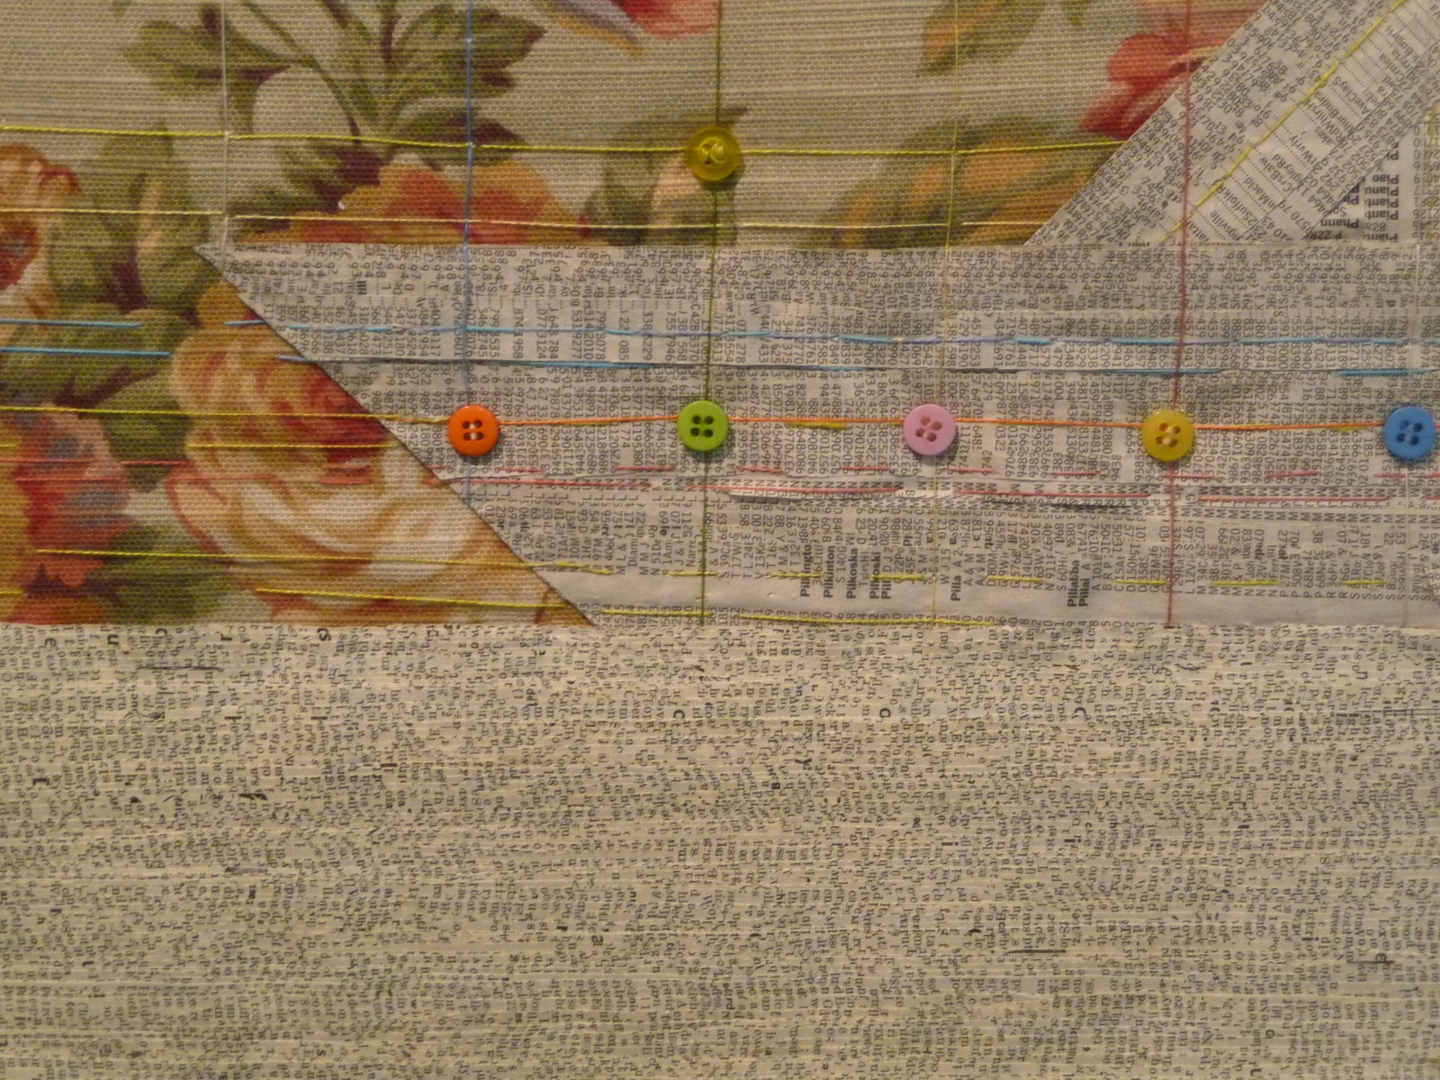 Still and still moving